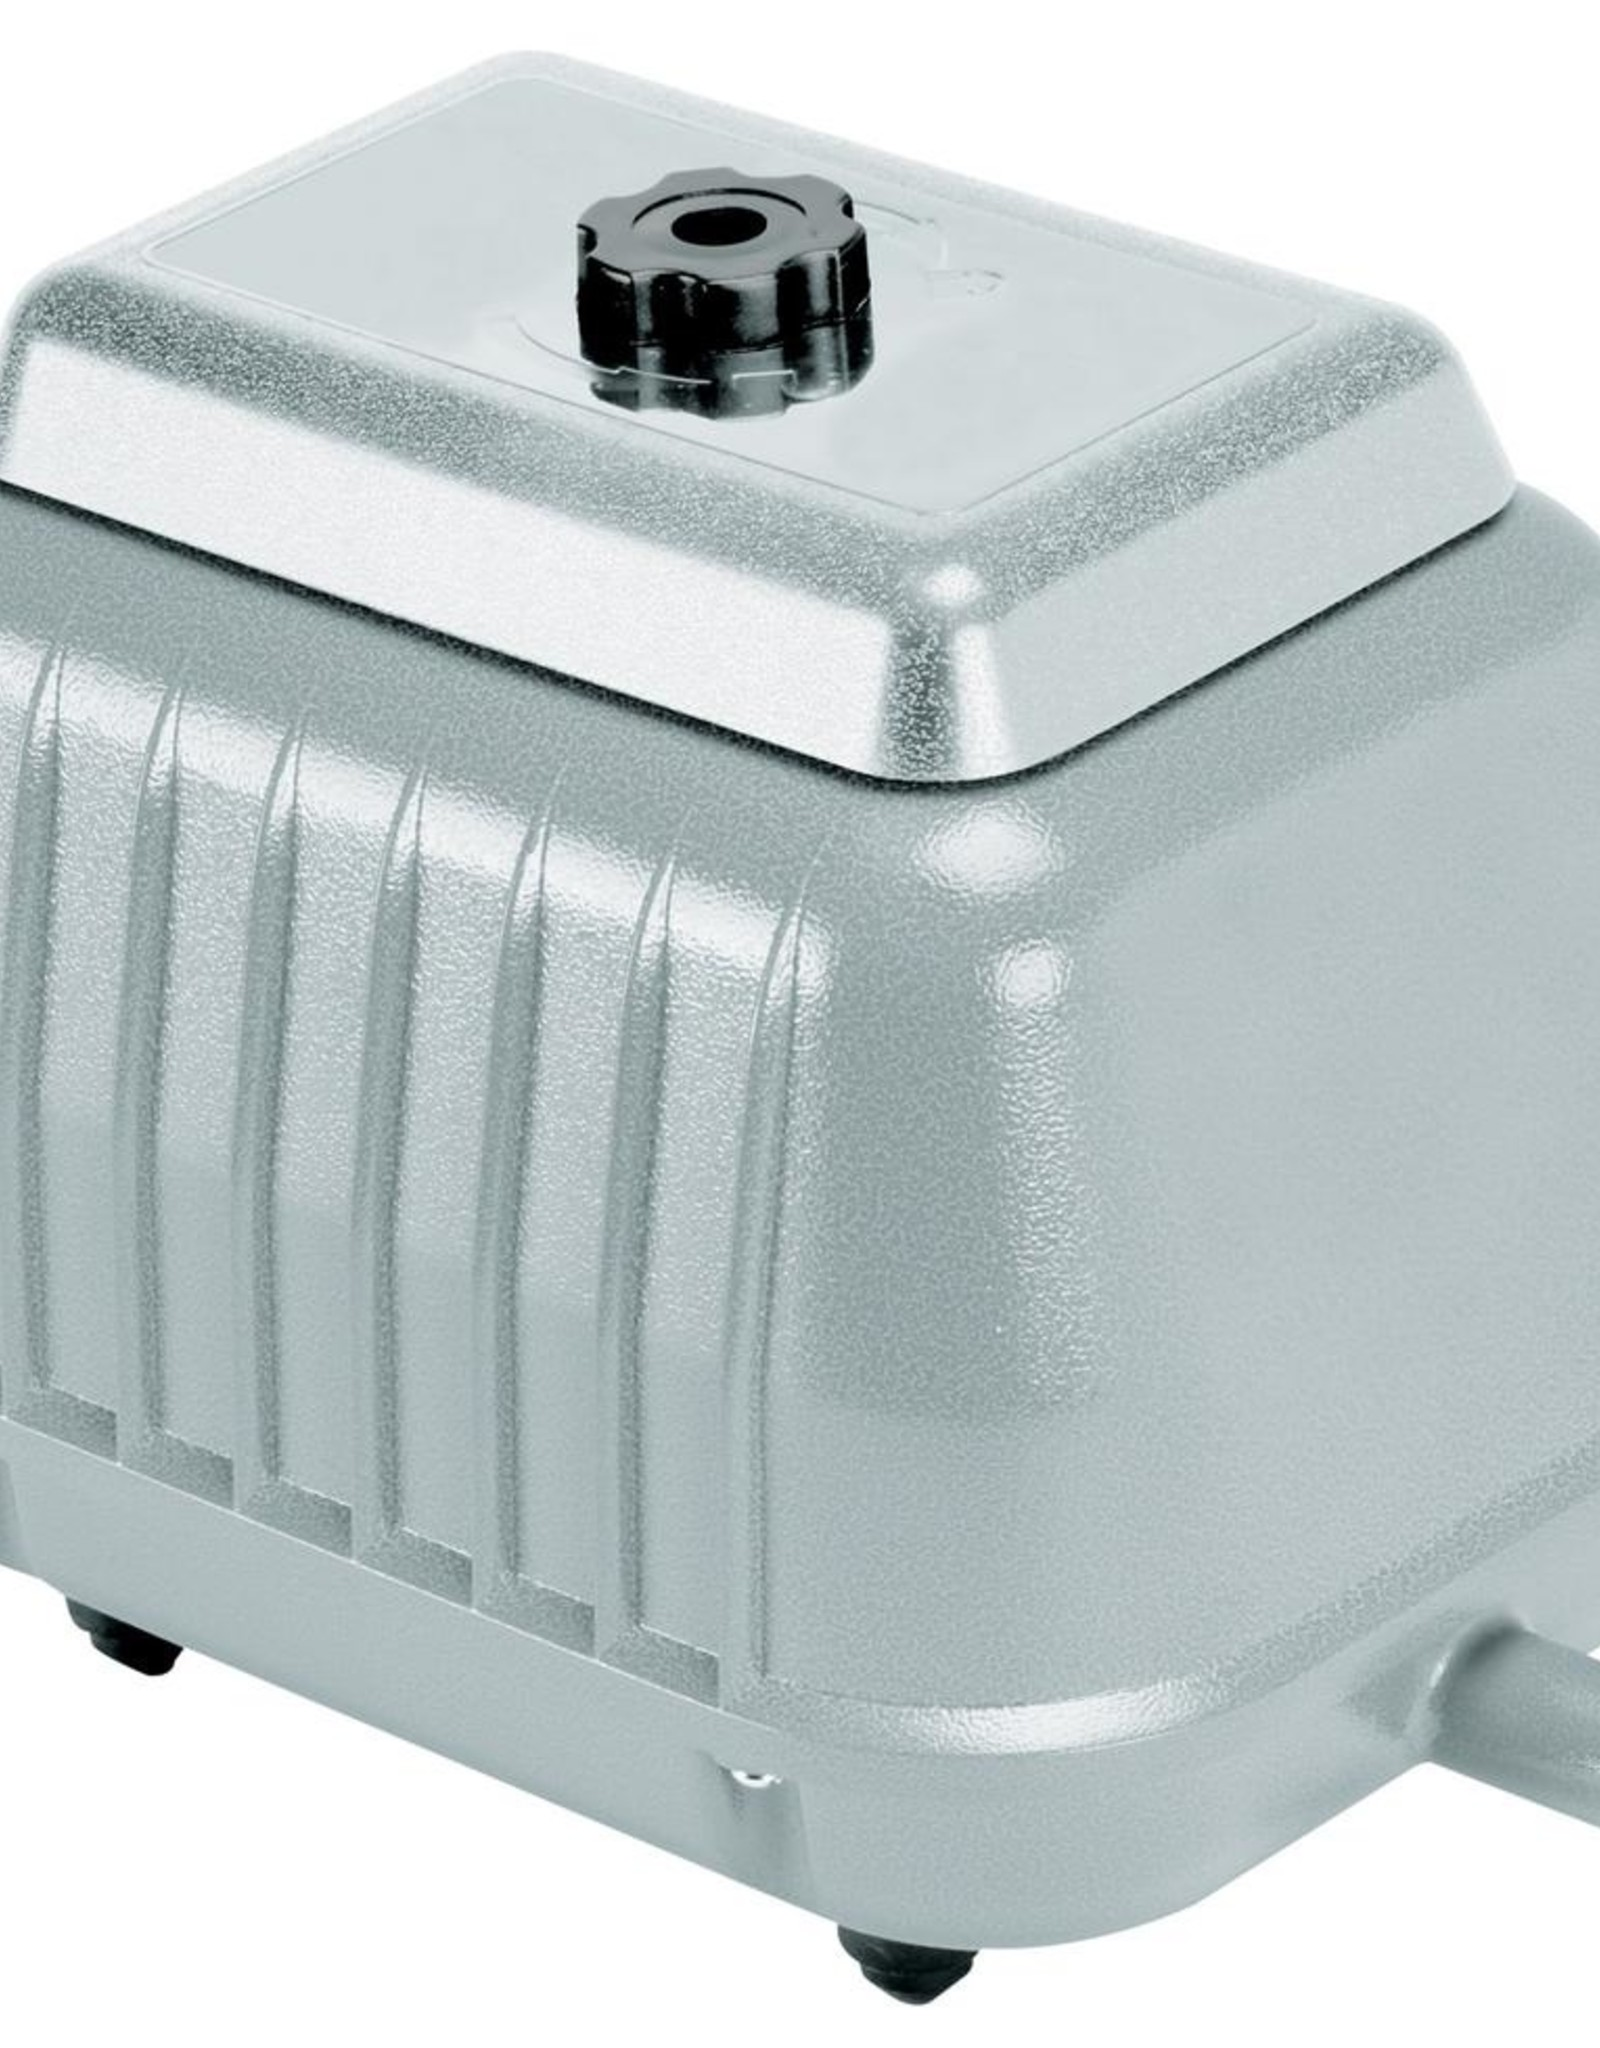 DANNER Danner Supreme Hydroponic AP-Series air pumps have been designed to satisfy the requirements of a multitude of water-related applications. The non-oil lubricated motor is designed to operate efficiently and save energy. Single outlet discharge and include